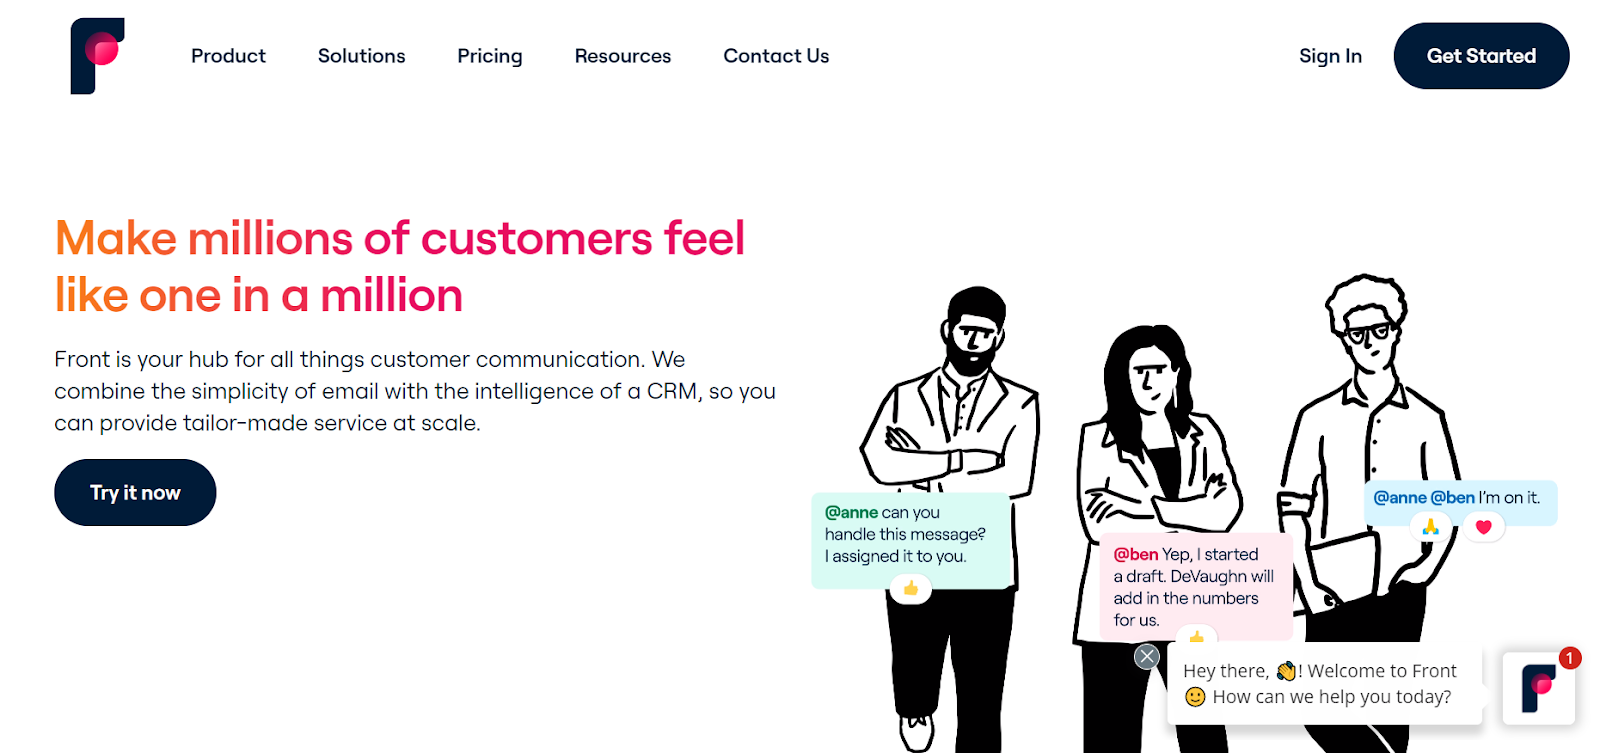 Front homepage: Make millions of customers feel like one in a million. Front is your hub for all things customer communication. We combine the simplicity of email with the intelligence of a CRM, so you can provide tailor-made service at scale.